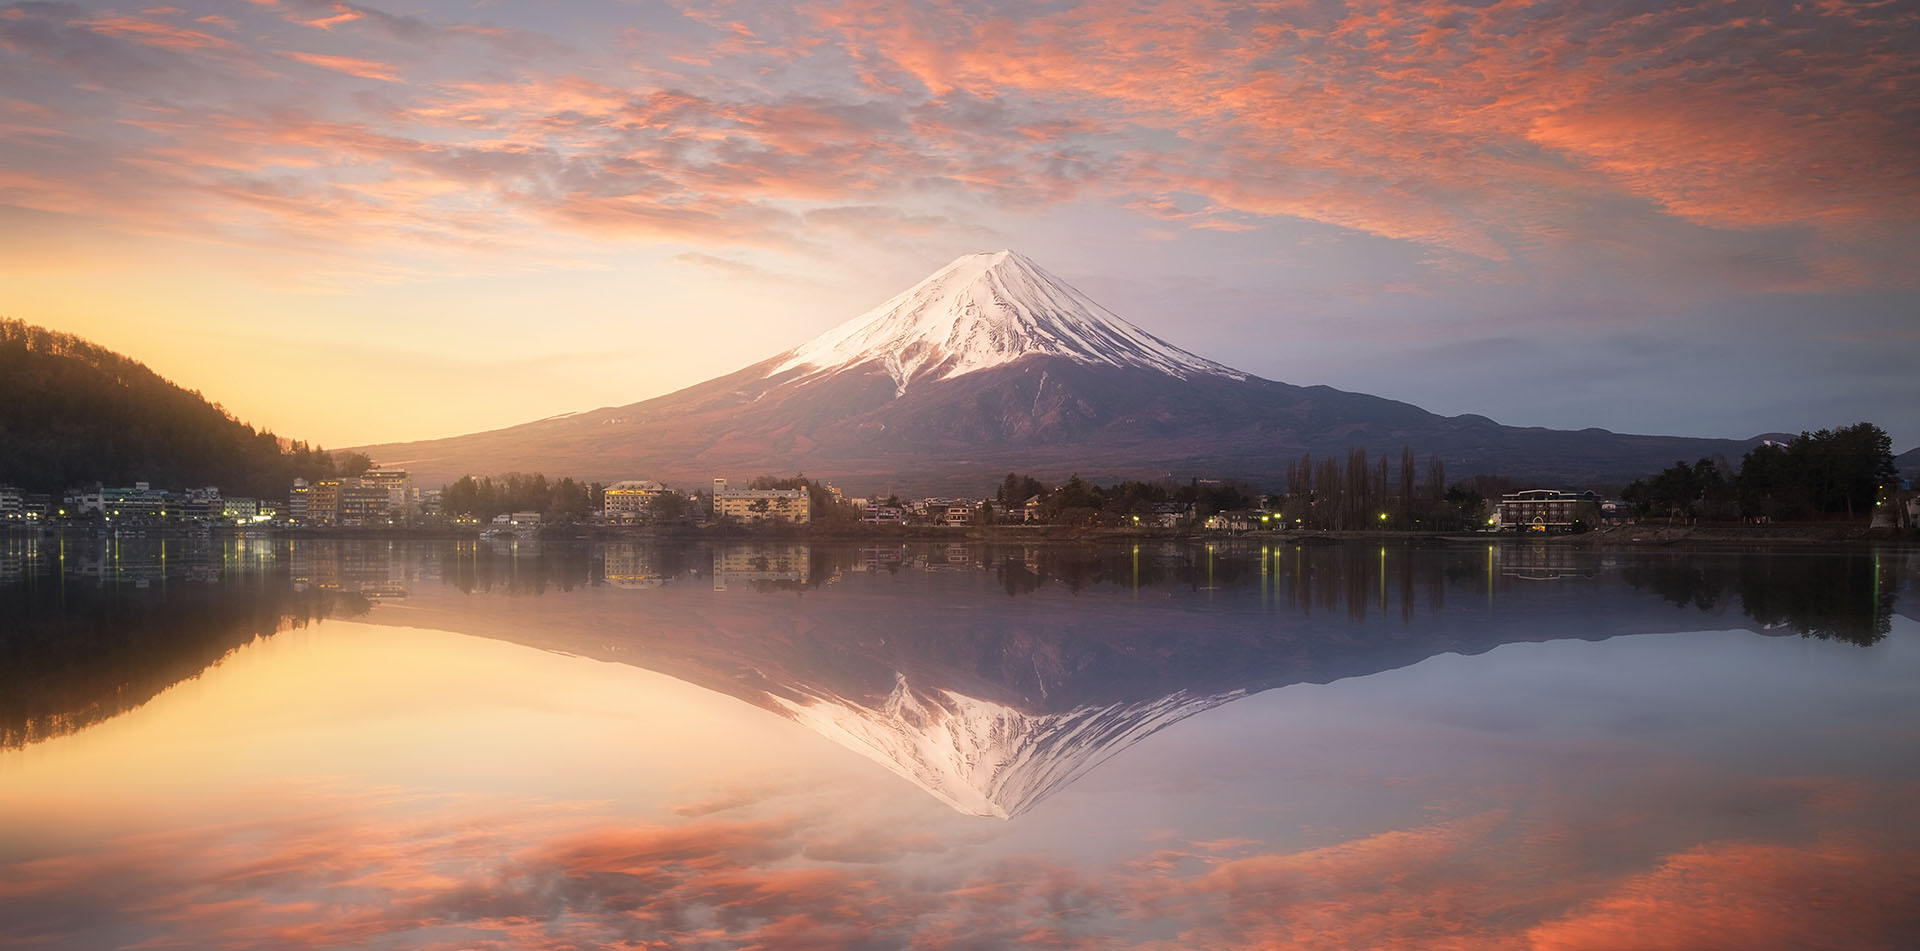 Mt. Fuji in Japan at sunrise